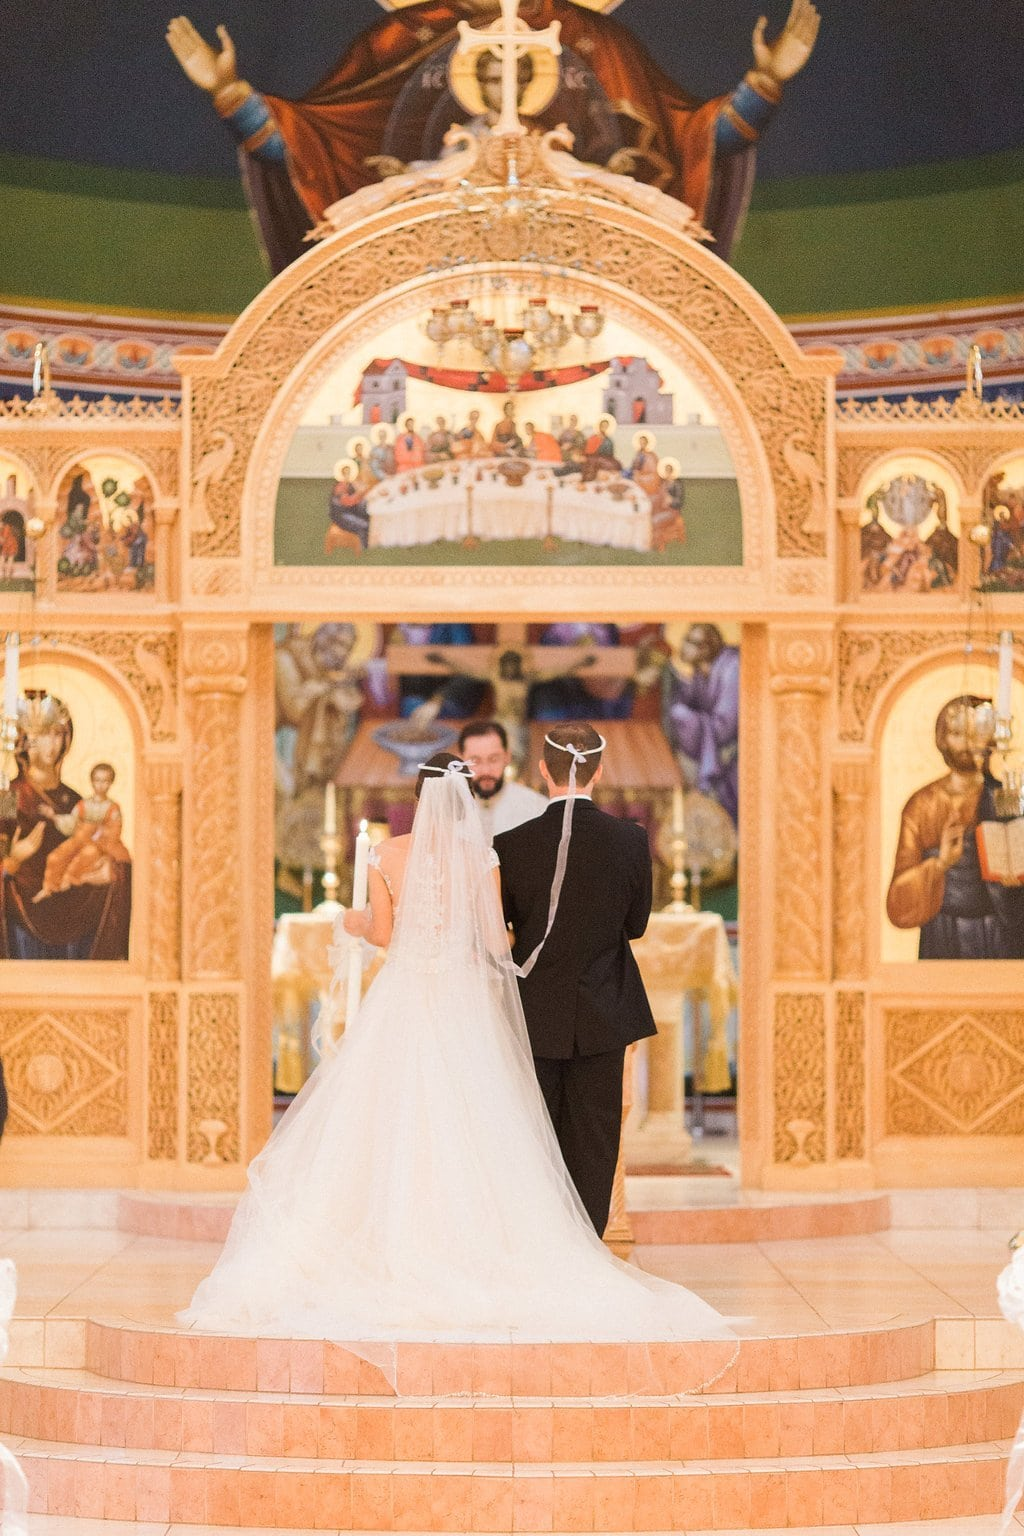 The bride and groom at the alter during their Greek wedding ceremony